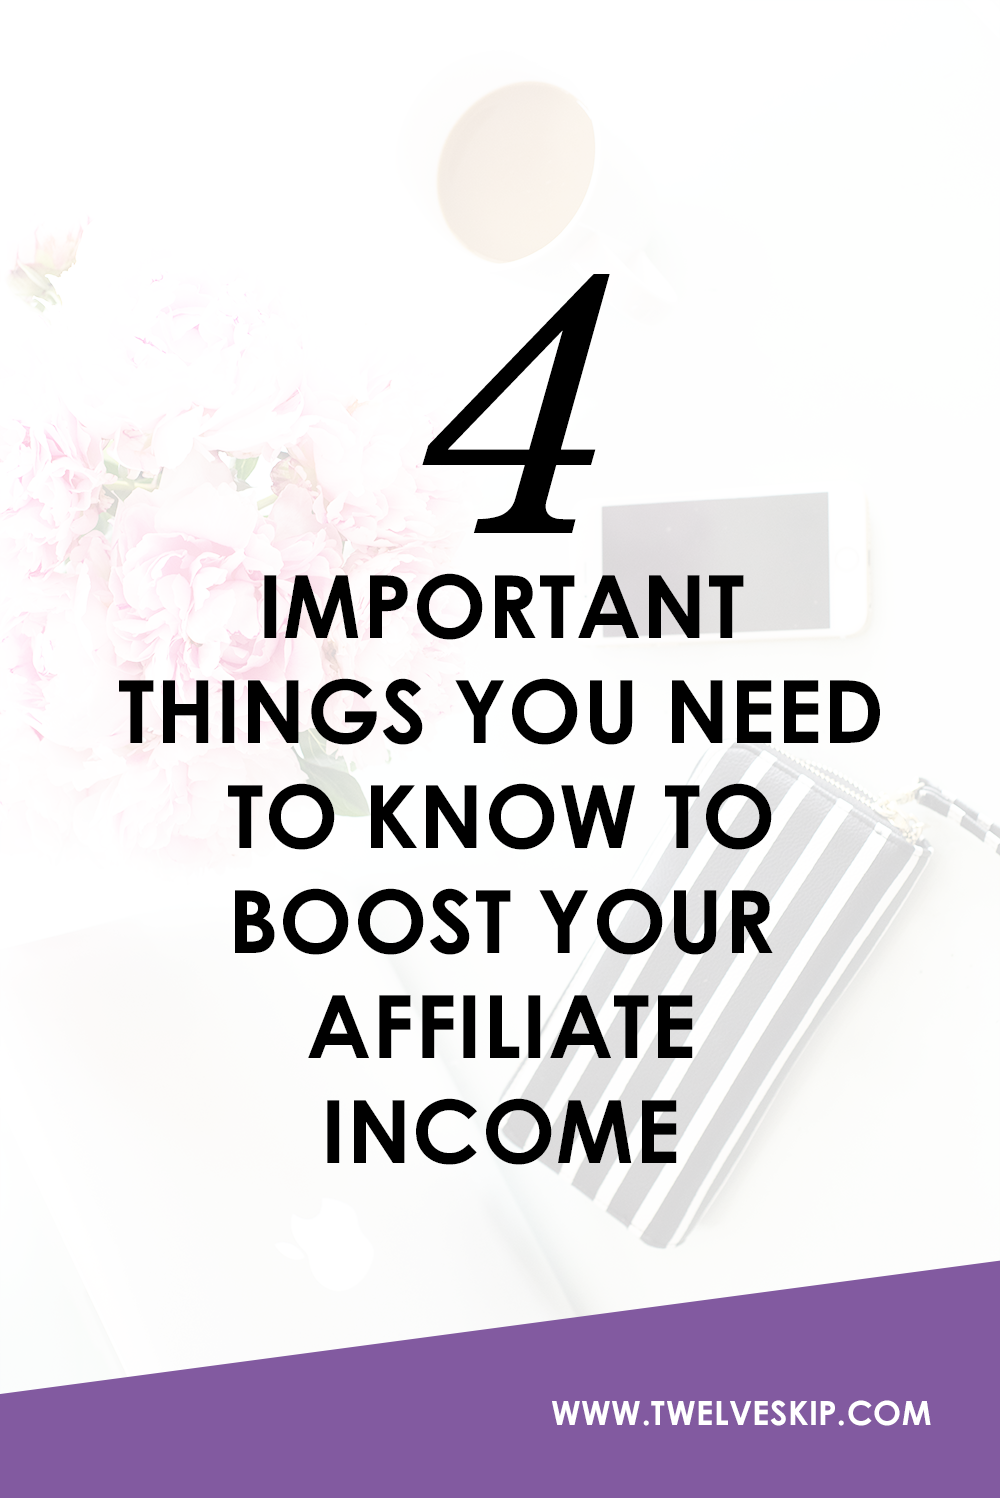 4 Important Things You Need To Know To Boost Your Affiliate Income